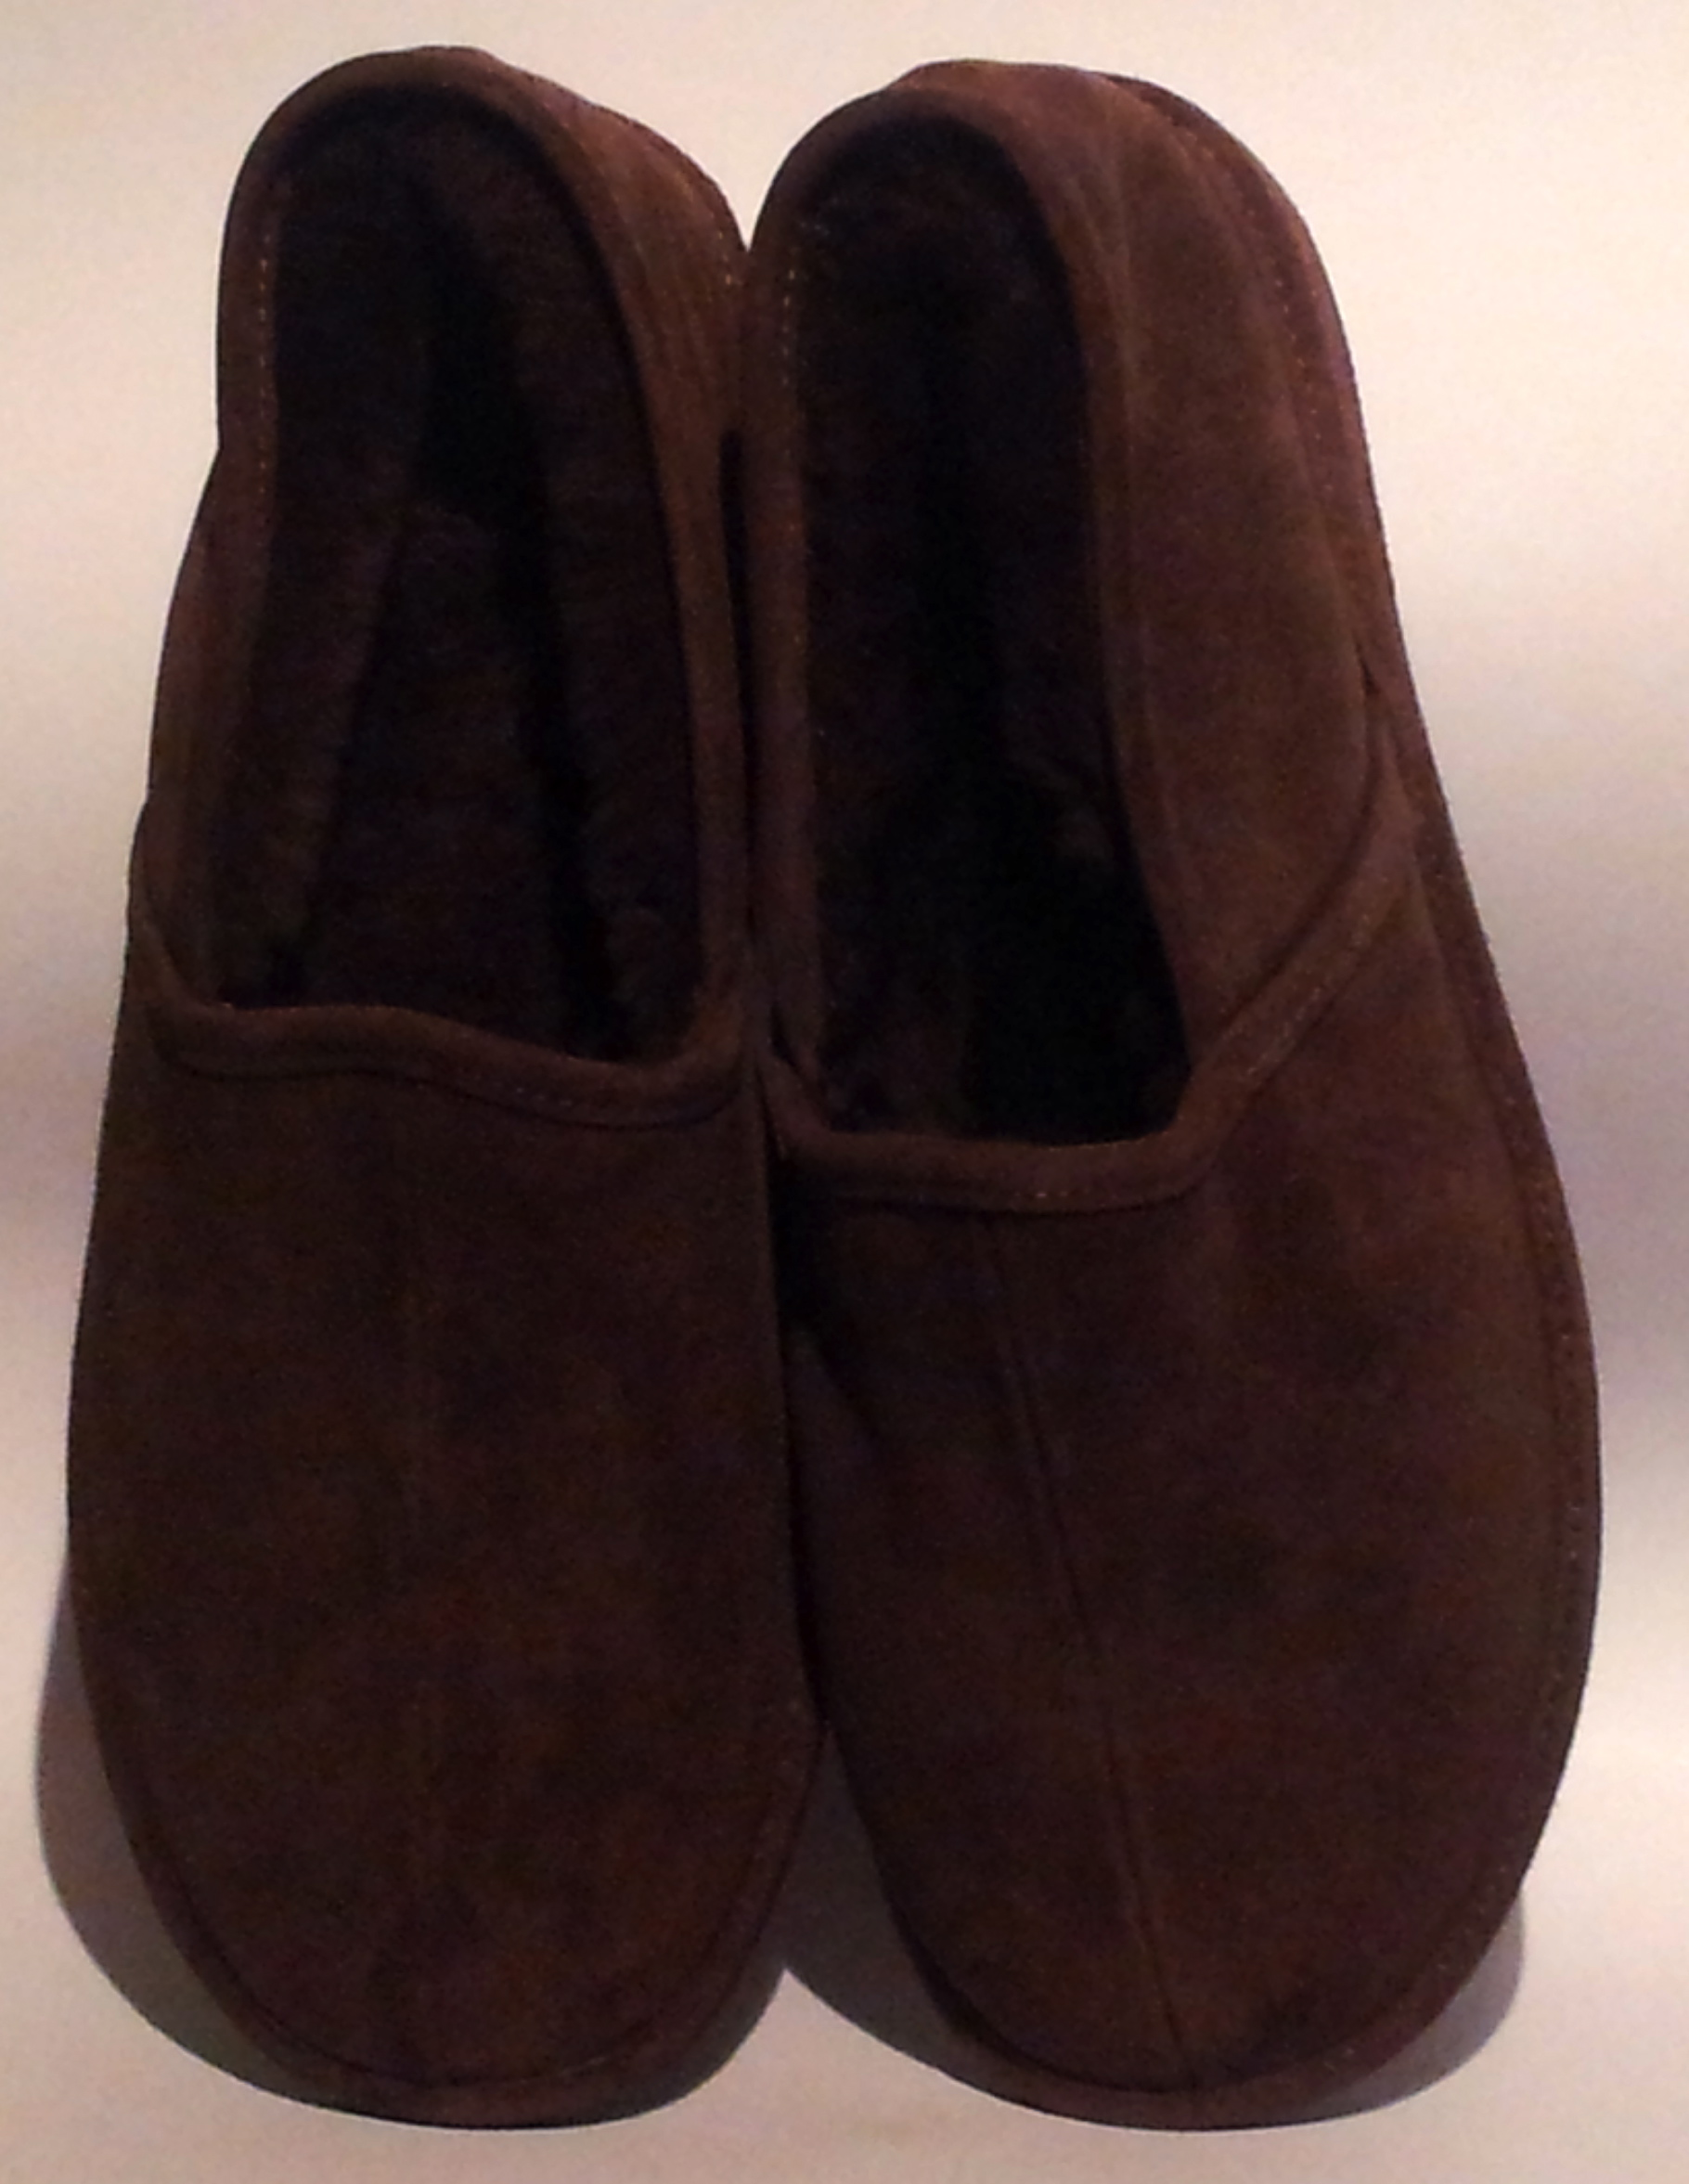 Men's Luxurious Sheepskin moccasins